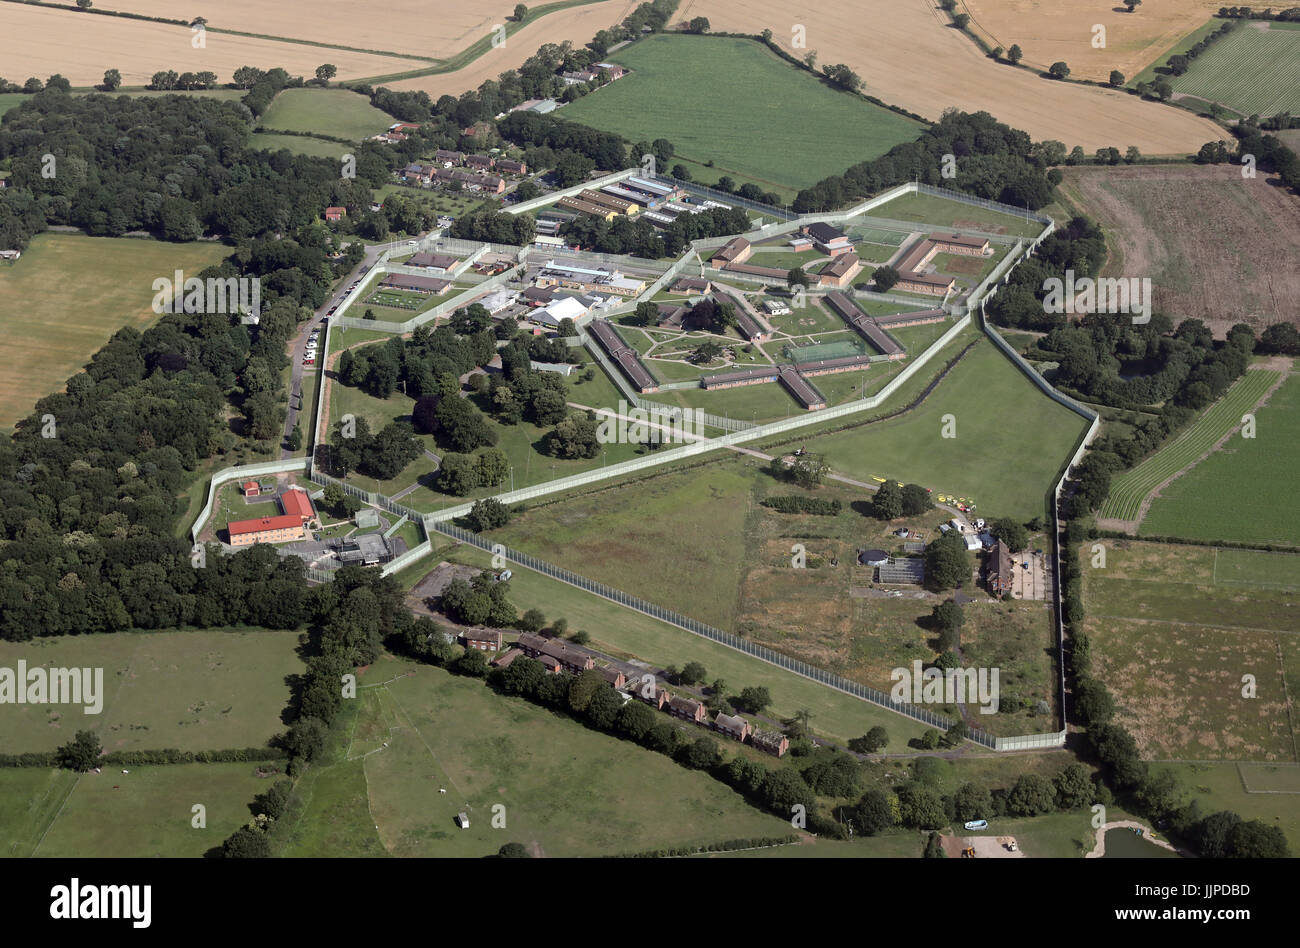 aerial view of IRC Morton Hall, Immigration Detention Centre, near Lincoln, UK - Stock Image